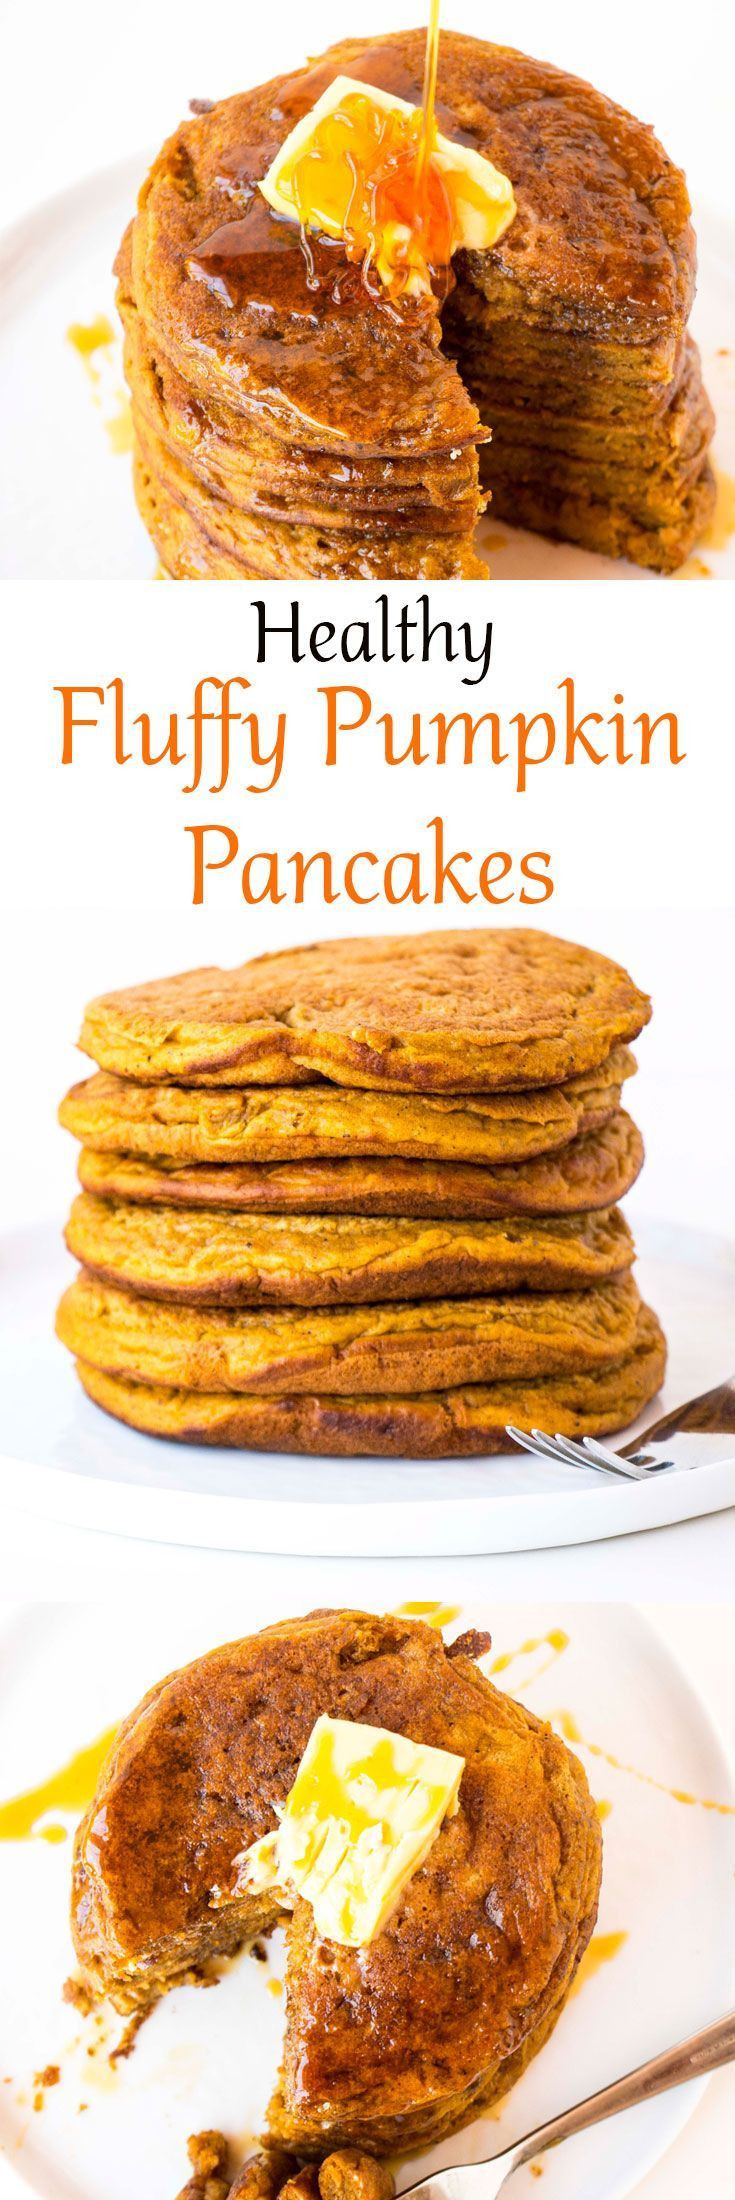 Healthy Fall Breakfast Recipes  1000 ideas about Healthy Pumpkin Pancakes on Pinterest